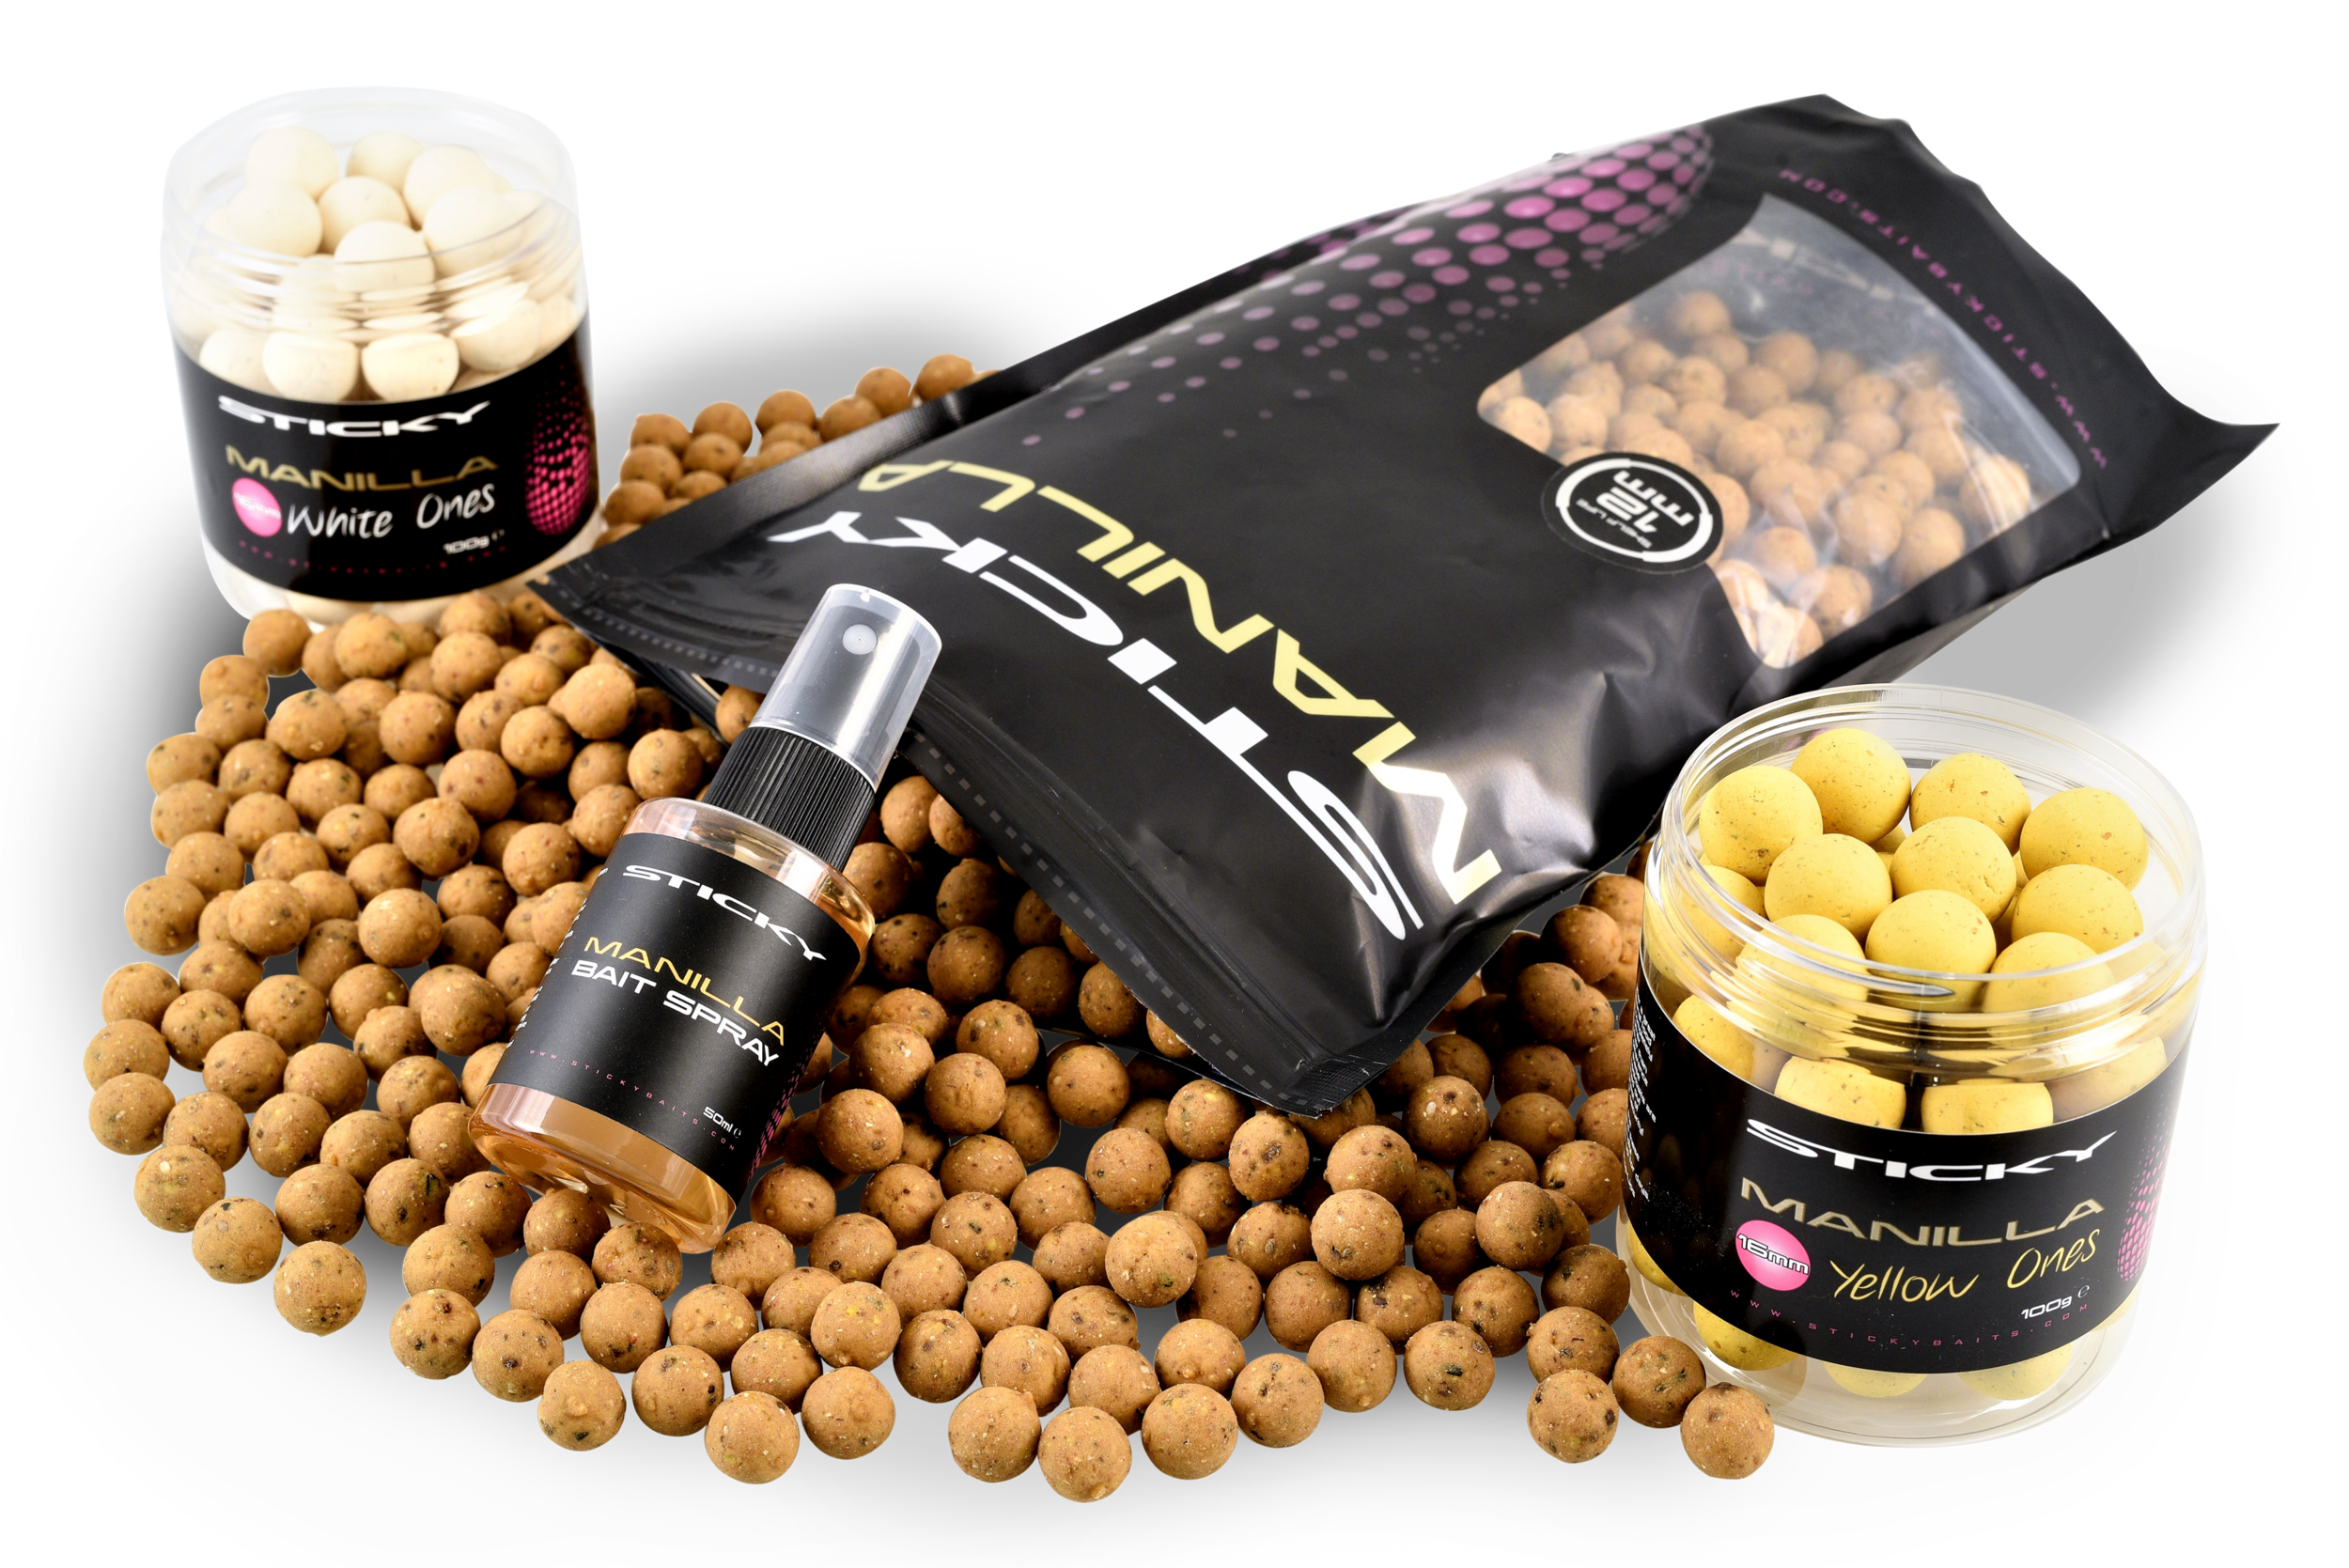 Boilies FULL RANGE MANILLA Sticky Baits Pop Ups Pellets Glug *New* Wafters